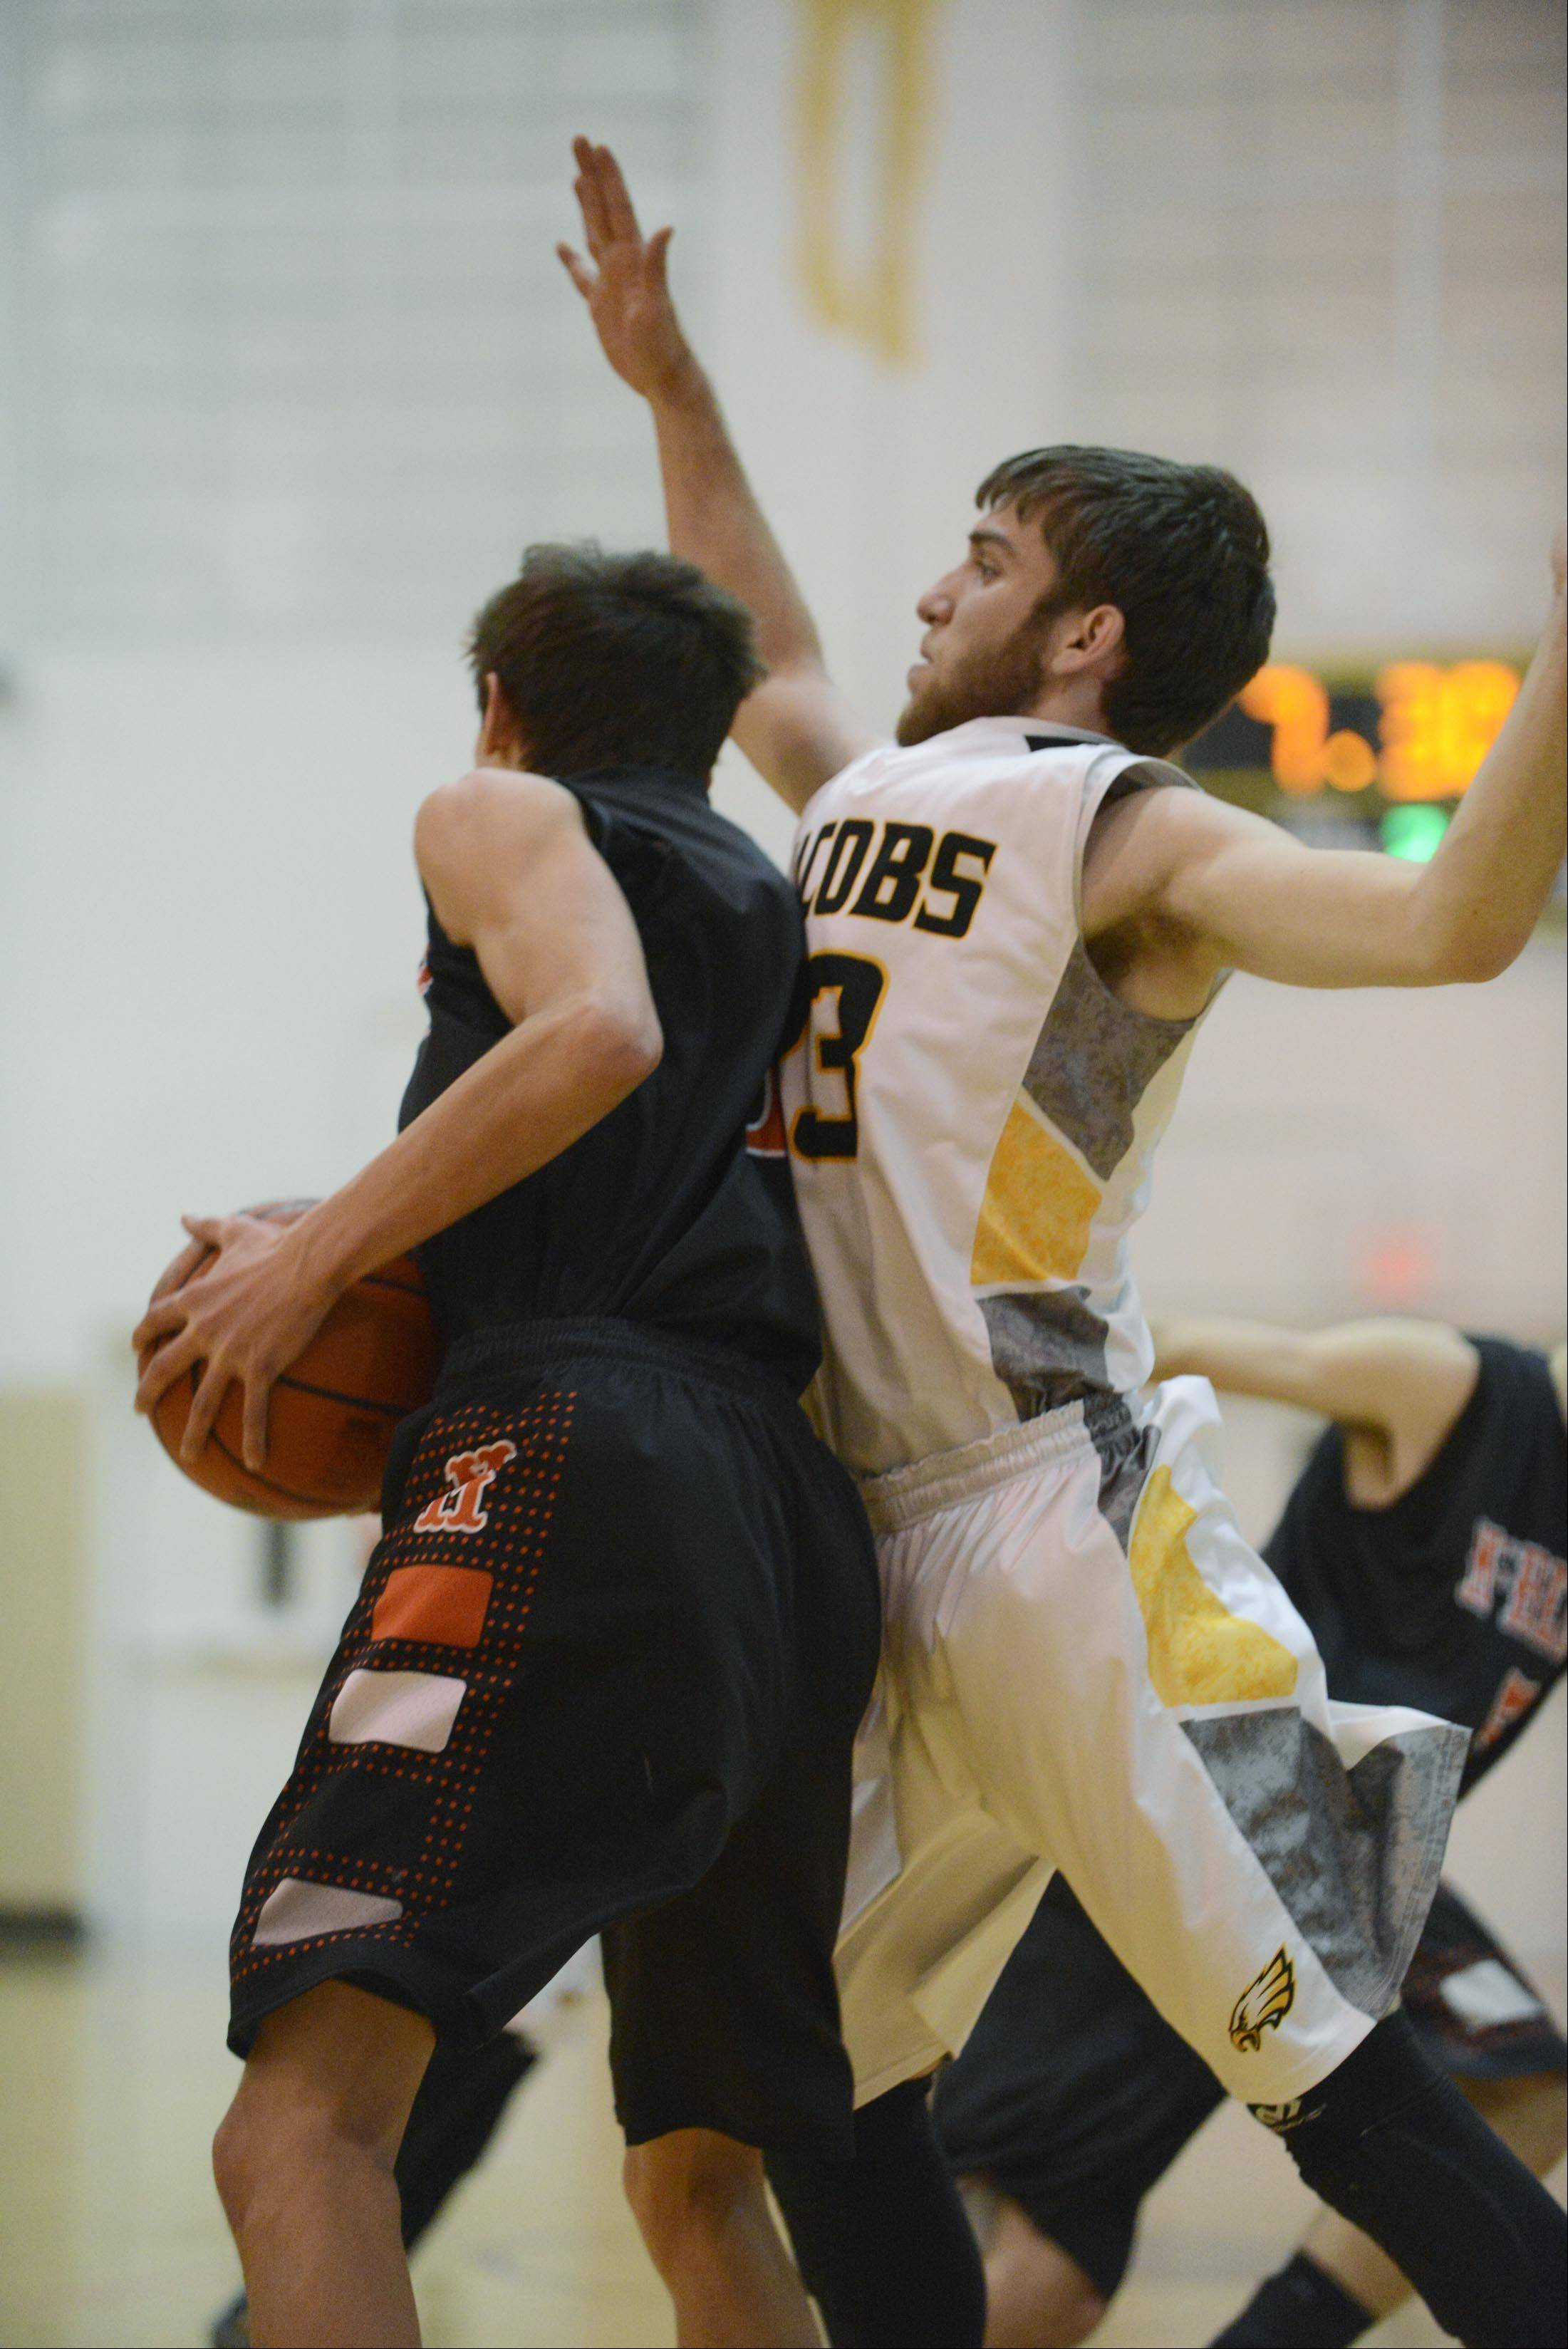 Images from the McHenry vs. Jacobs boys basketball game Wednesday, January 8, 2014.